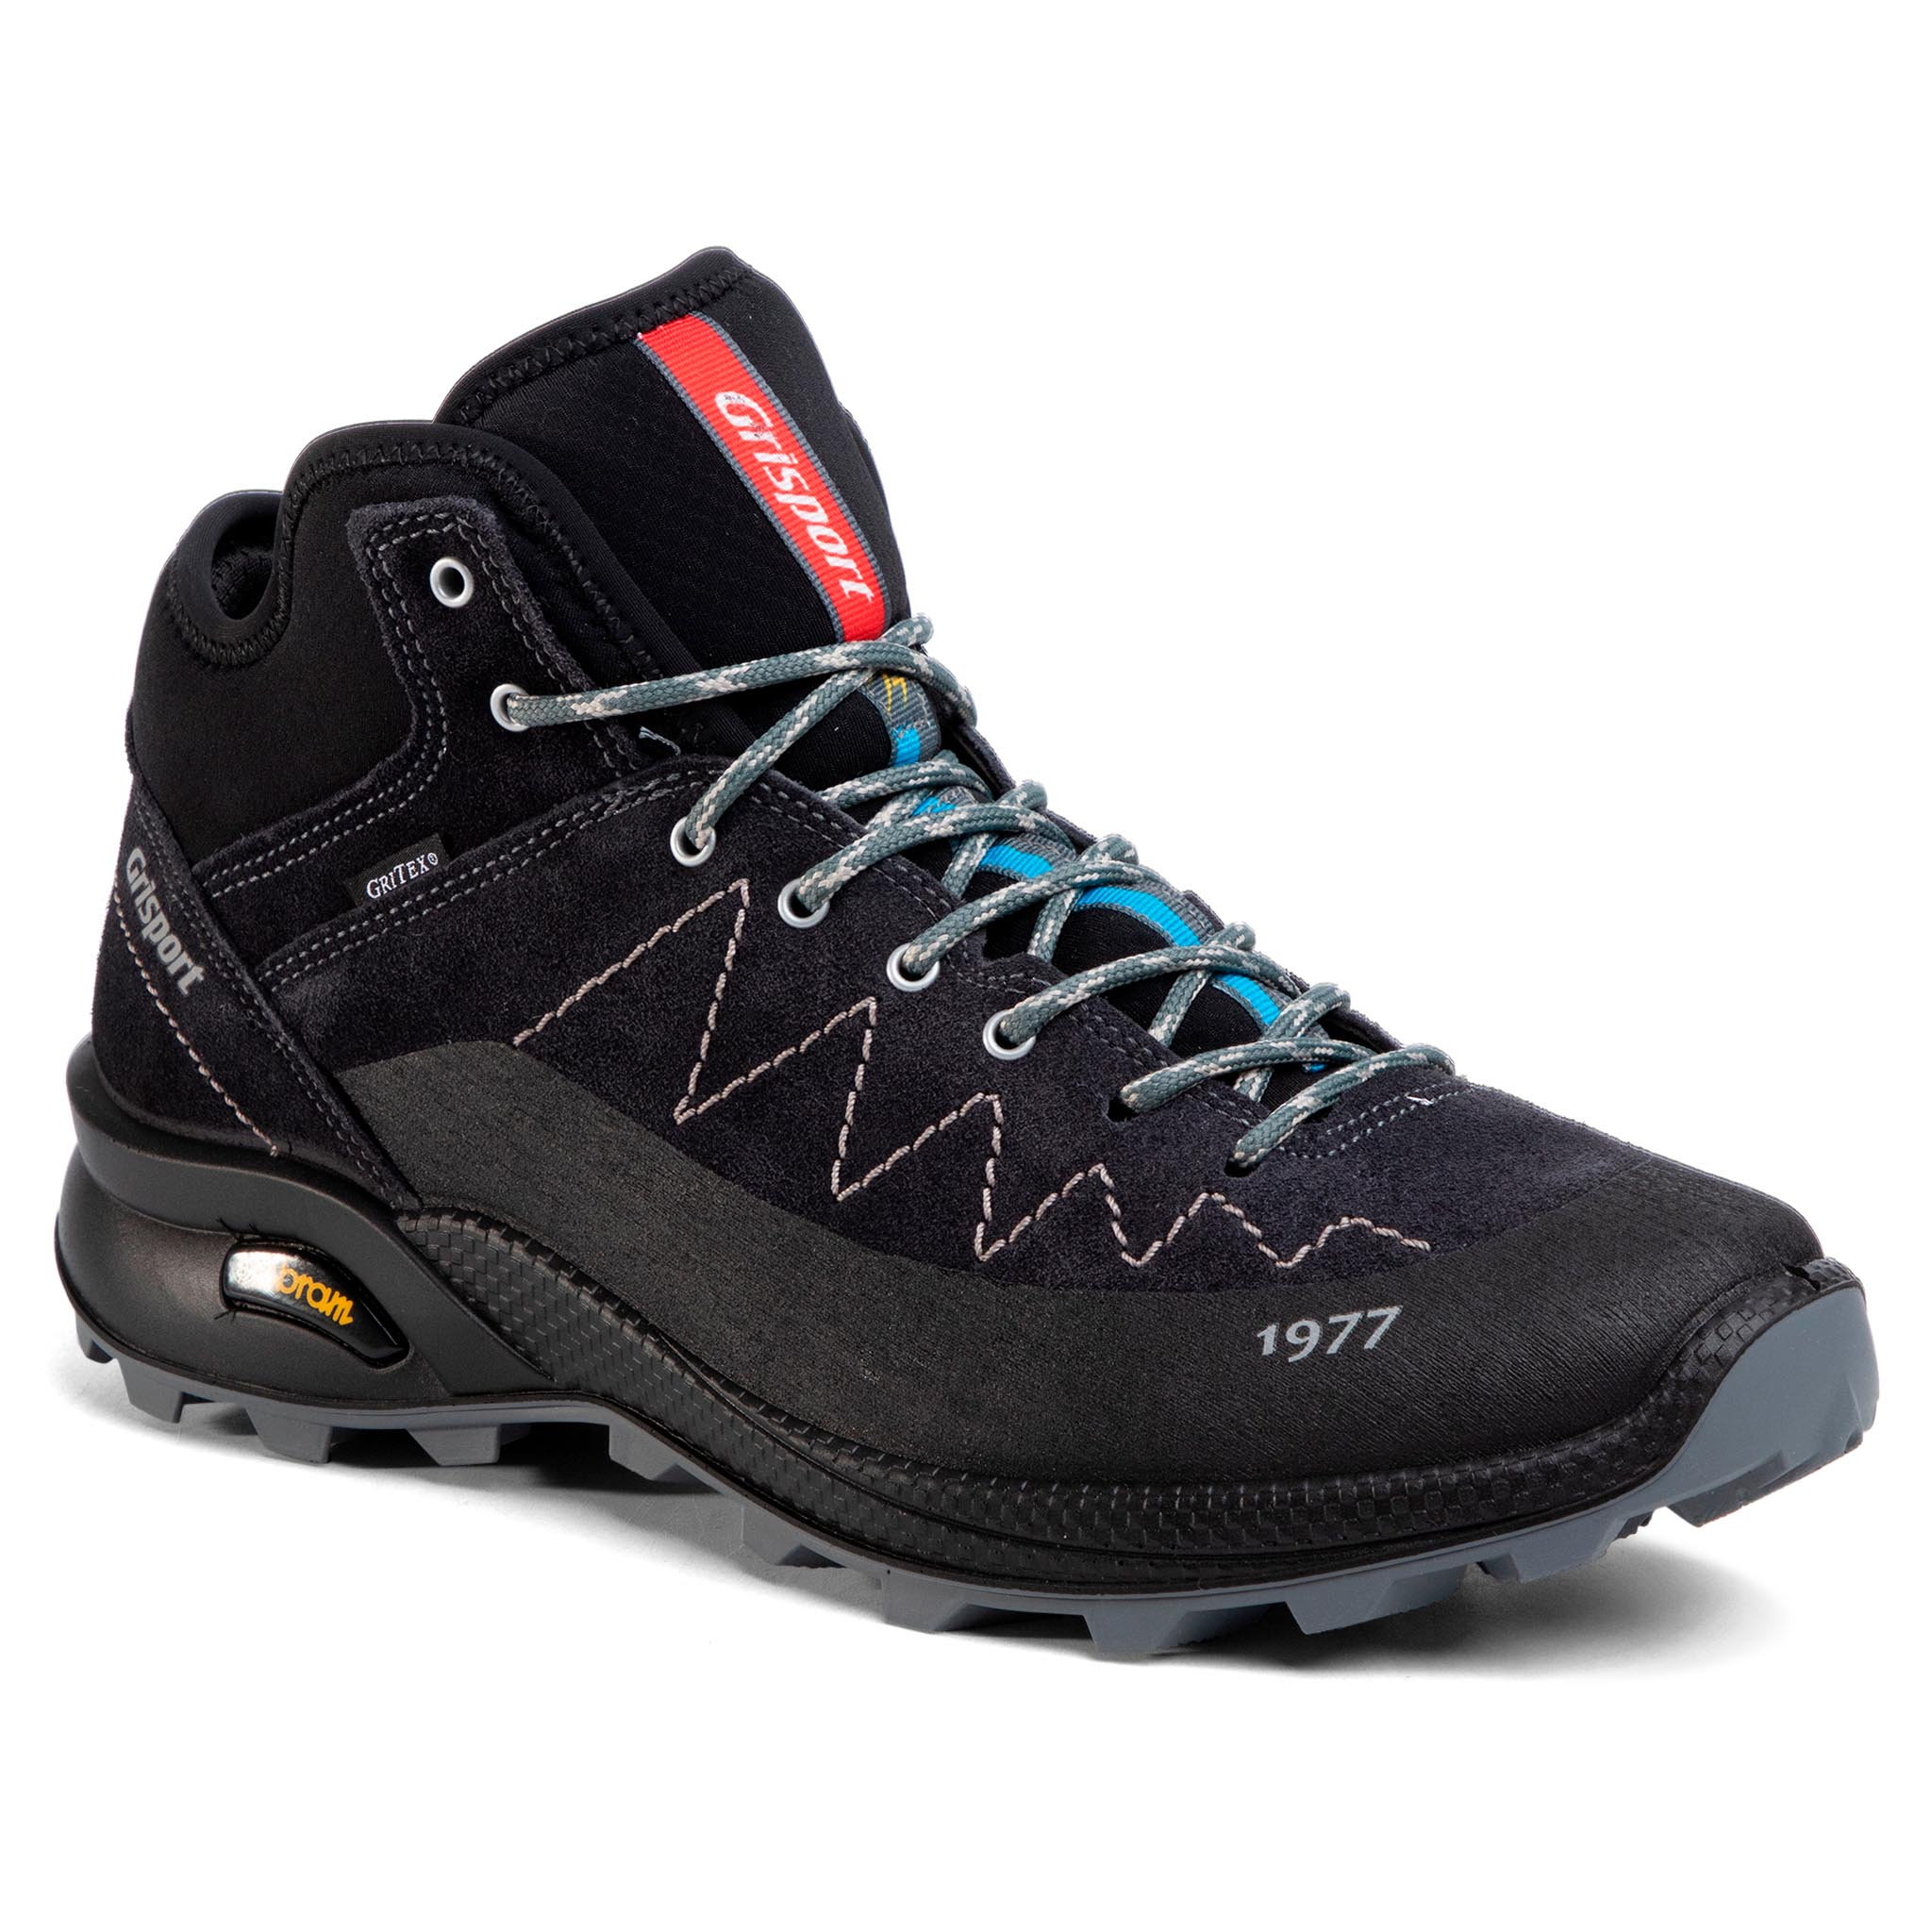 Trekkings Grisport - 13143v16g Deep Vesuvio imagine epantofi.ro 2021